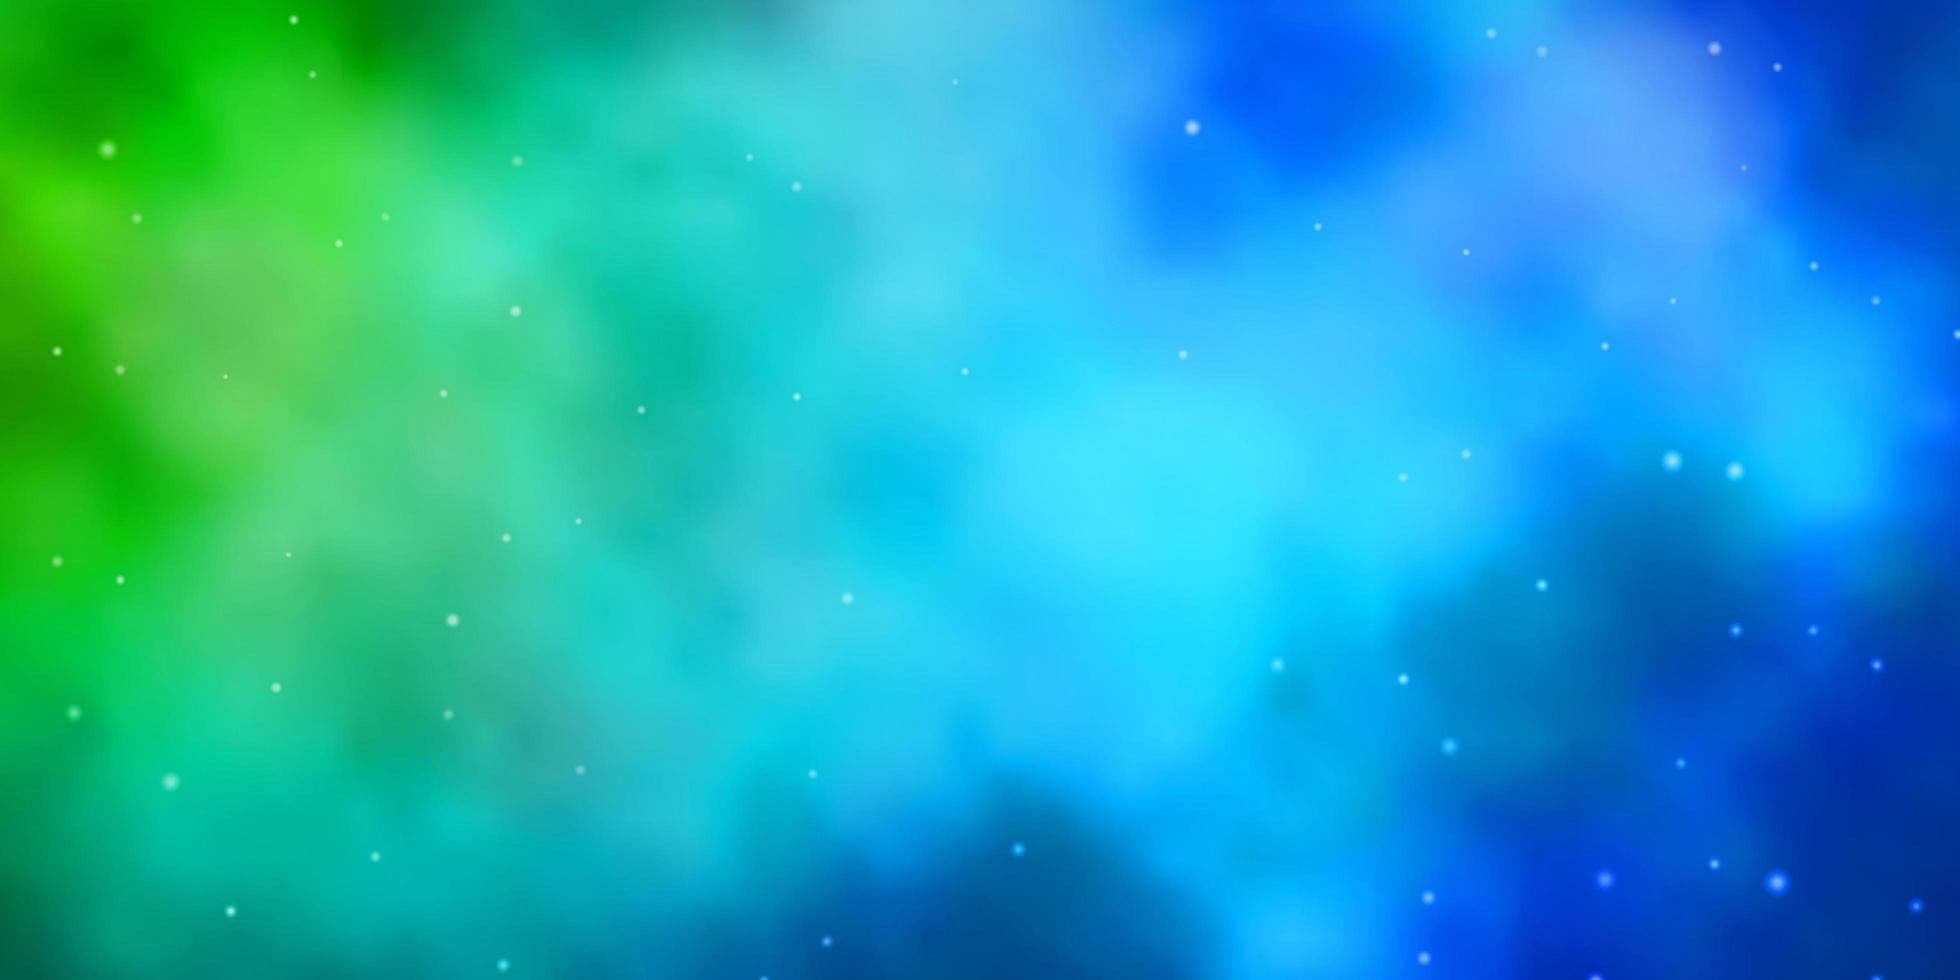 Light Blue, Green layout with bright stars. vector